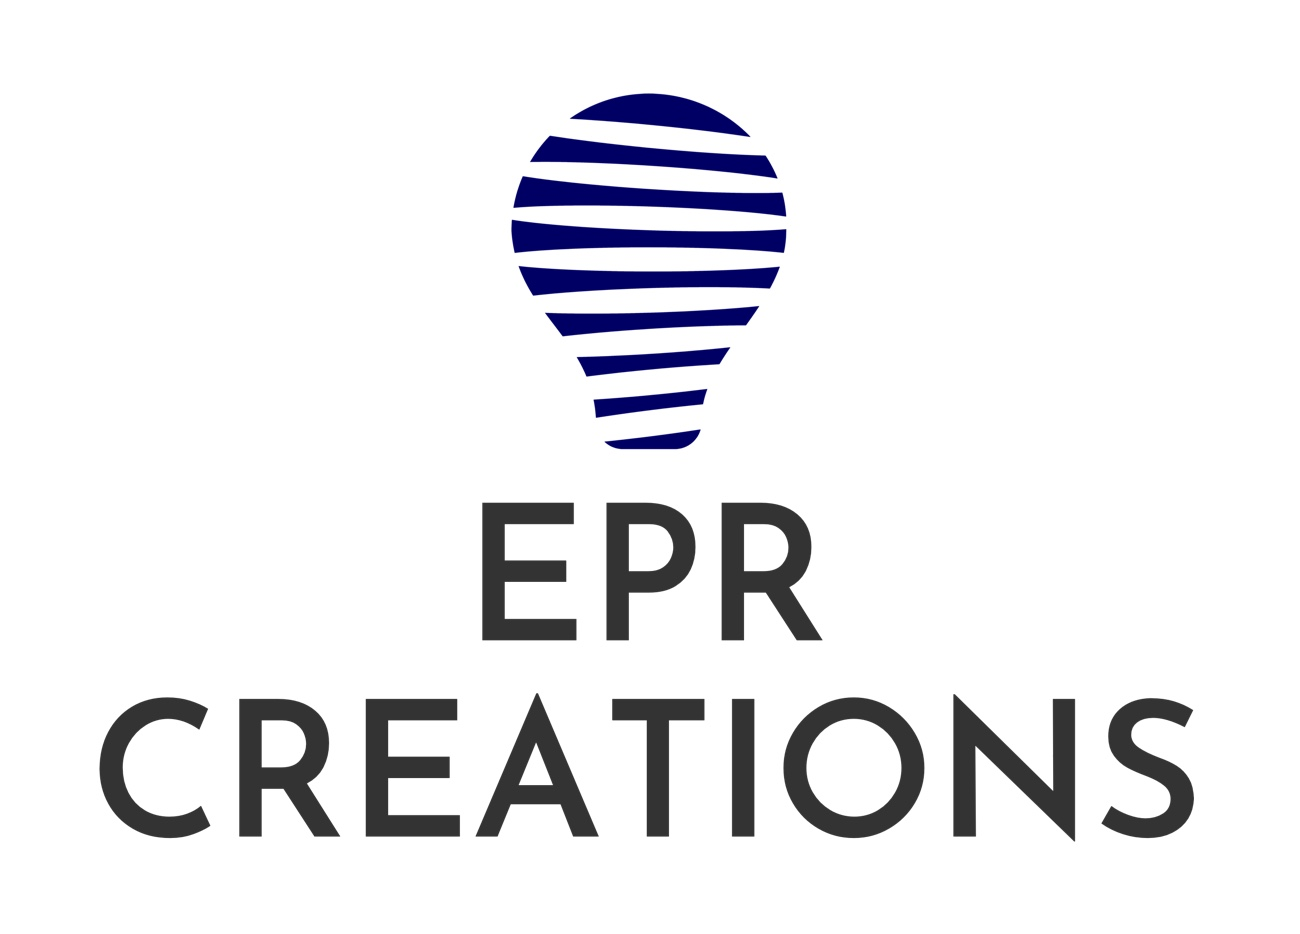 Epr Creations Vertical